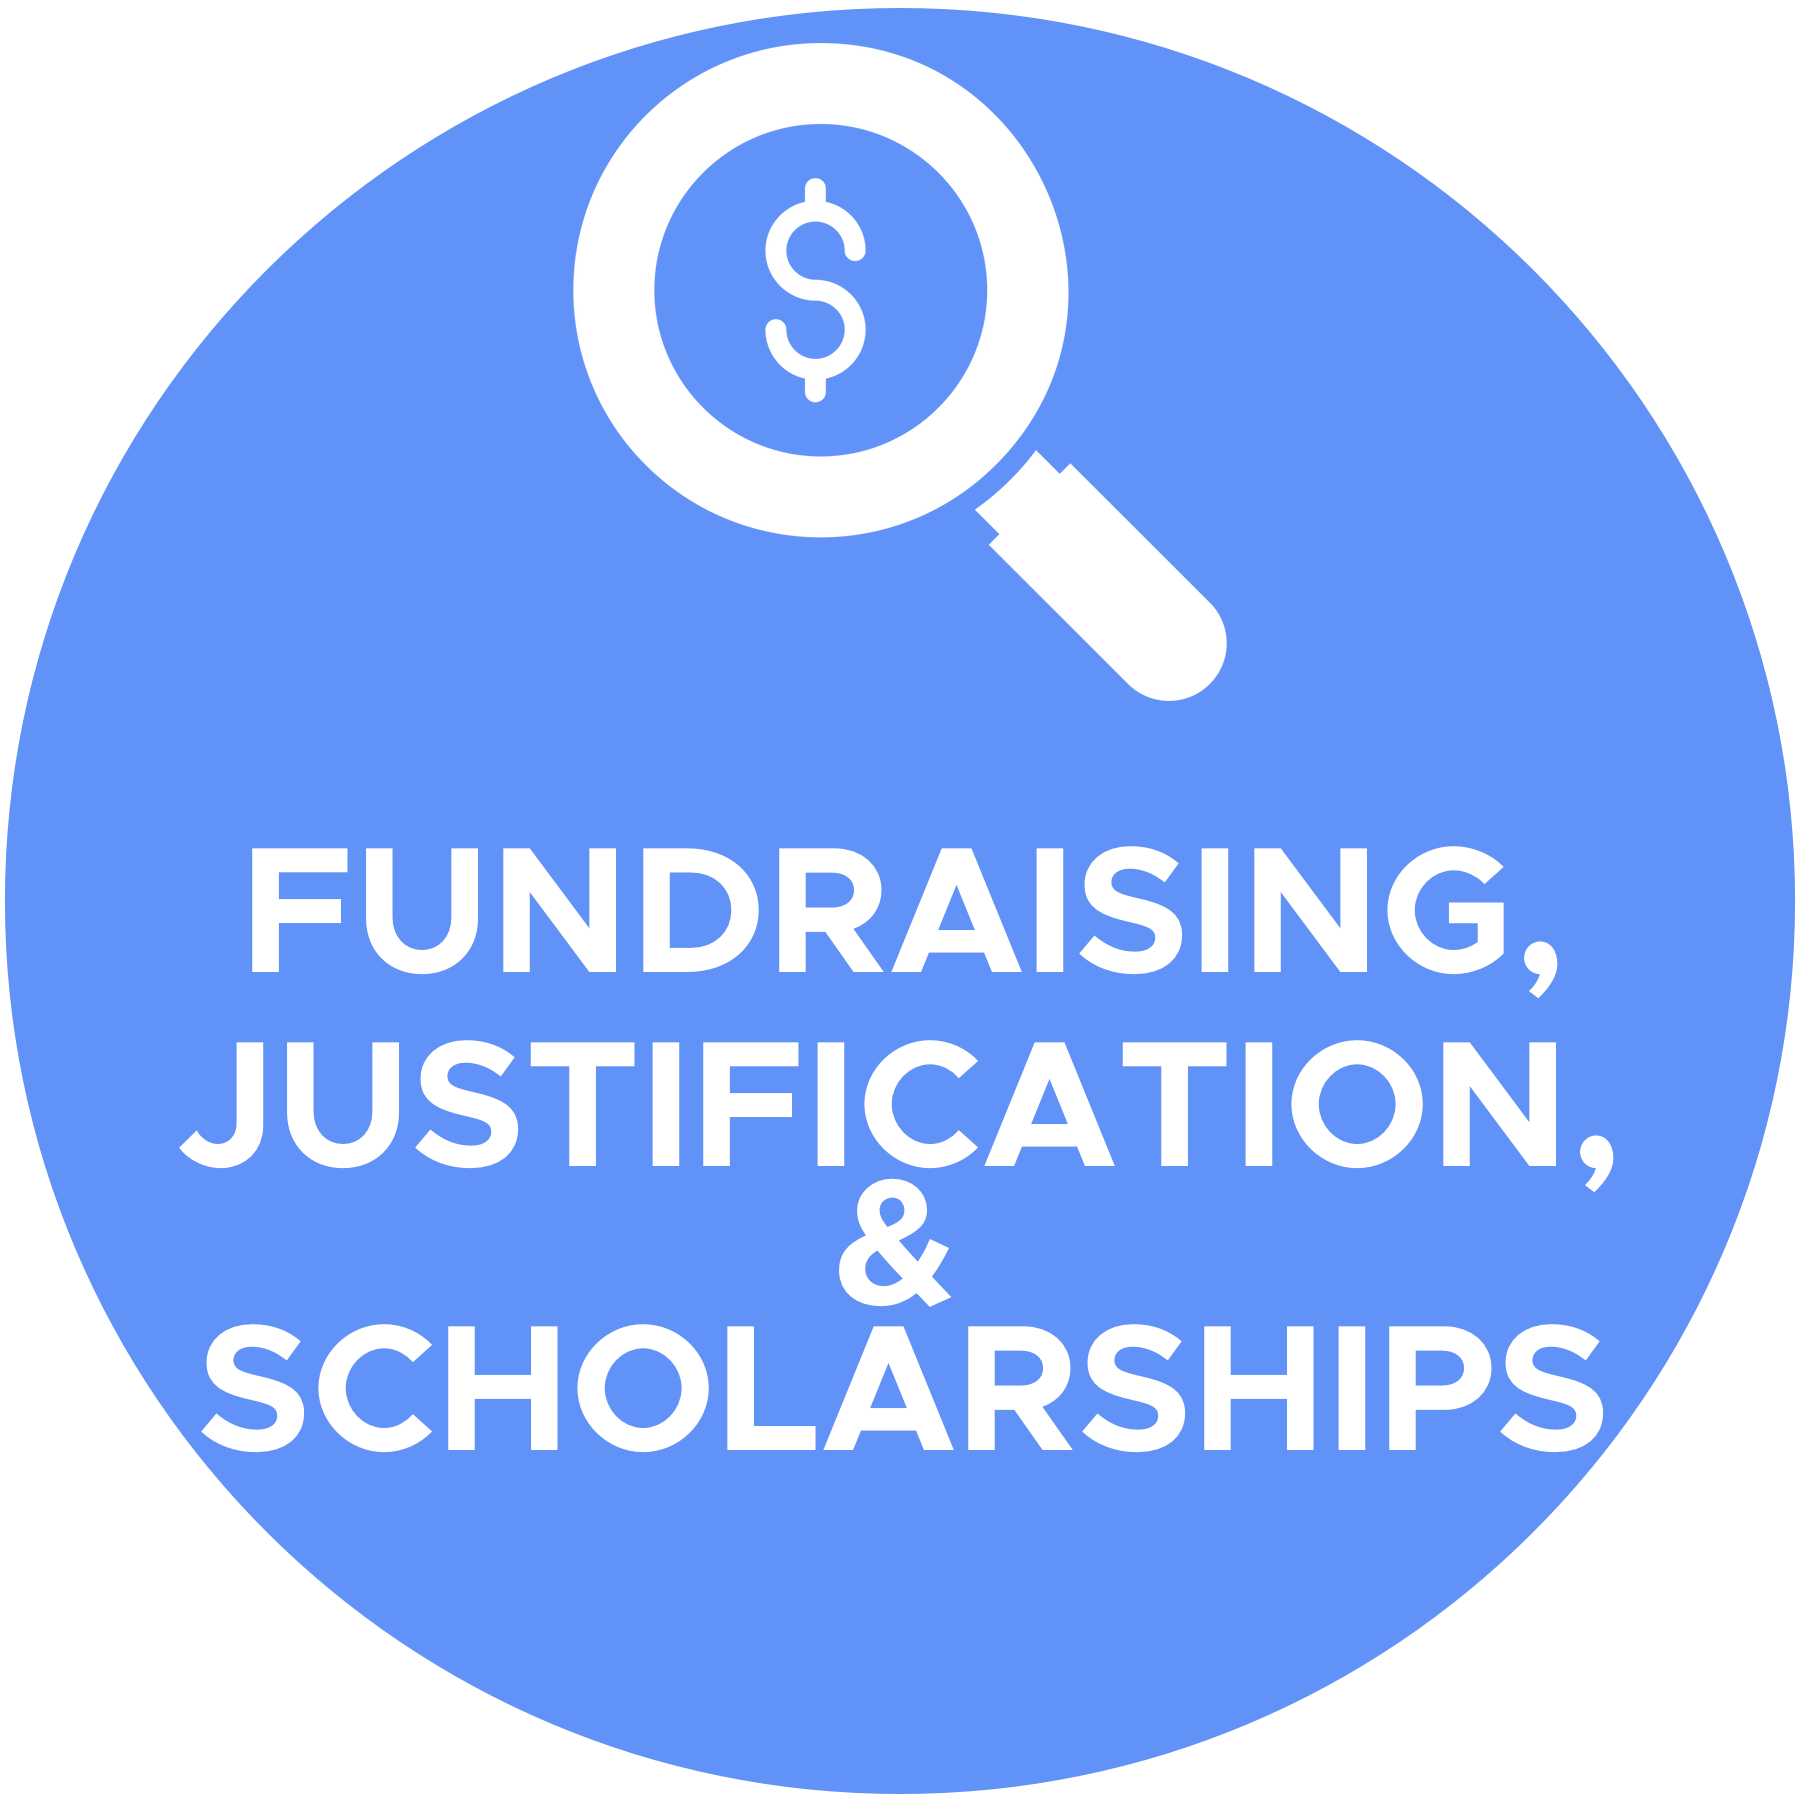 Fundraising, Justification and Scholarships